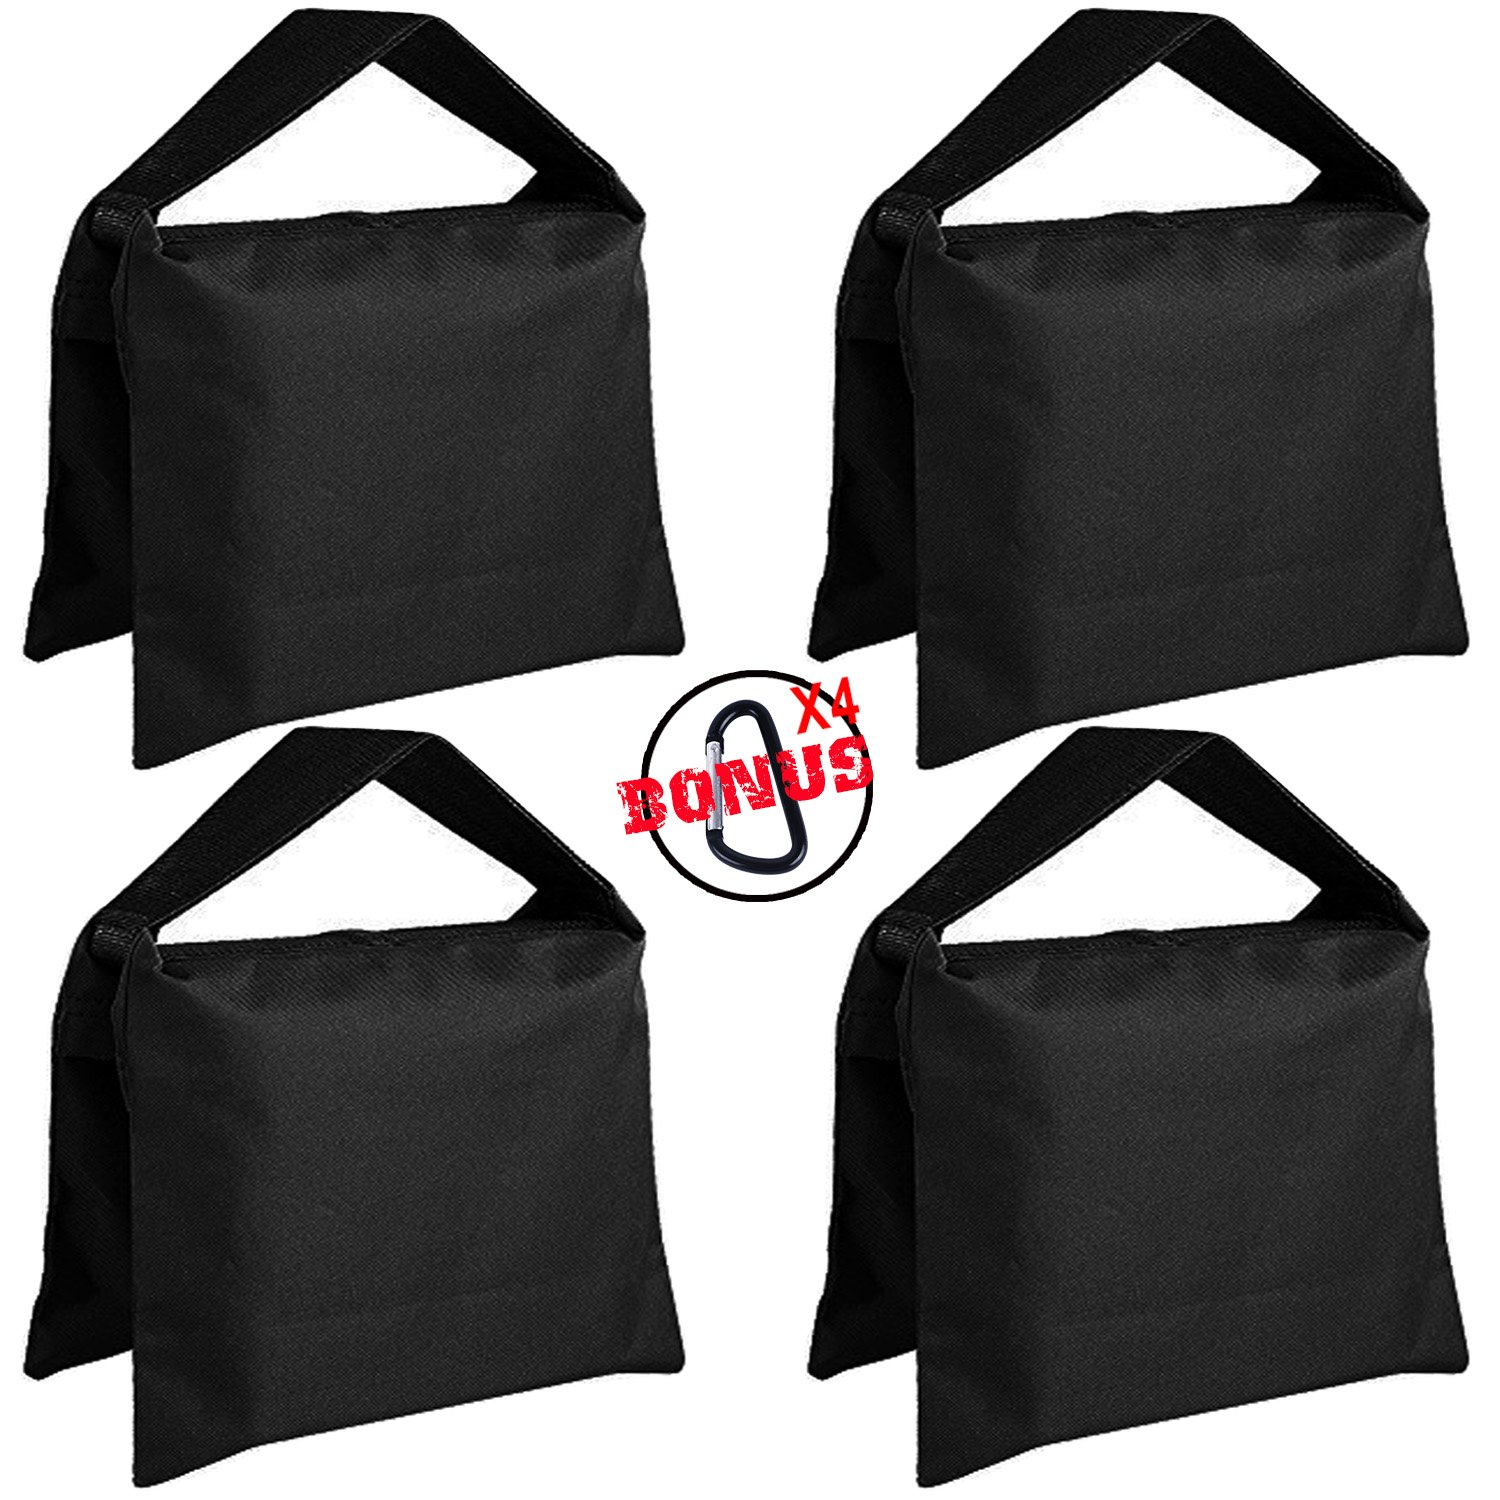 Super Heavy Duty ABCCANOPY Sandbag Saddlebag Design 4 Weight Bags For Photo Video Studio Stand (black) by ABCCANOPY